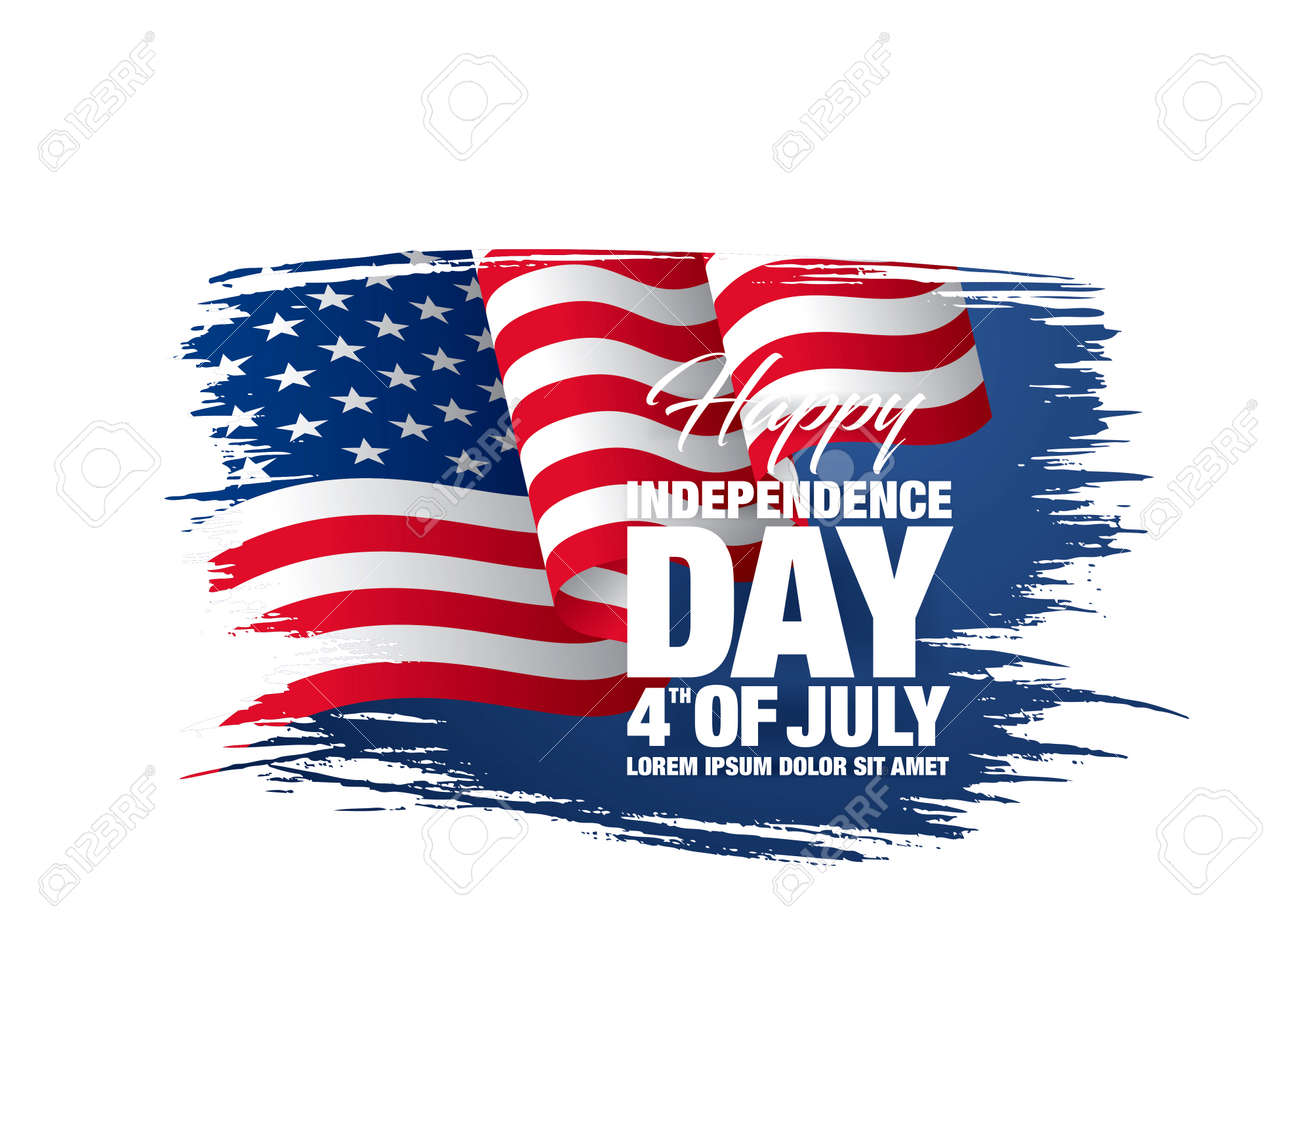 Fourth of July Independence Day. Vector illustration - 140184602